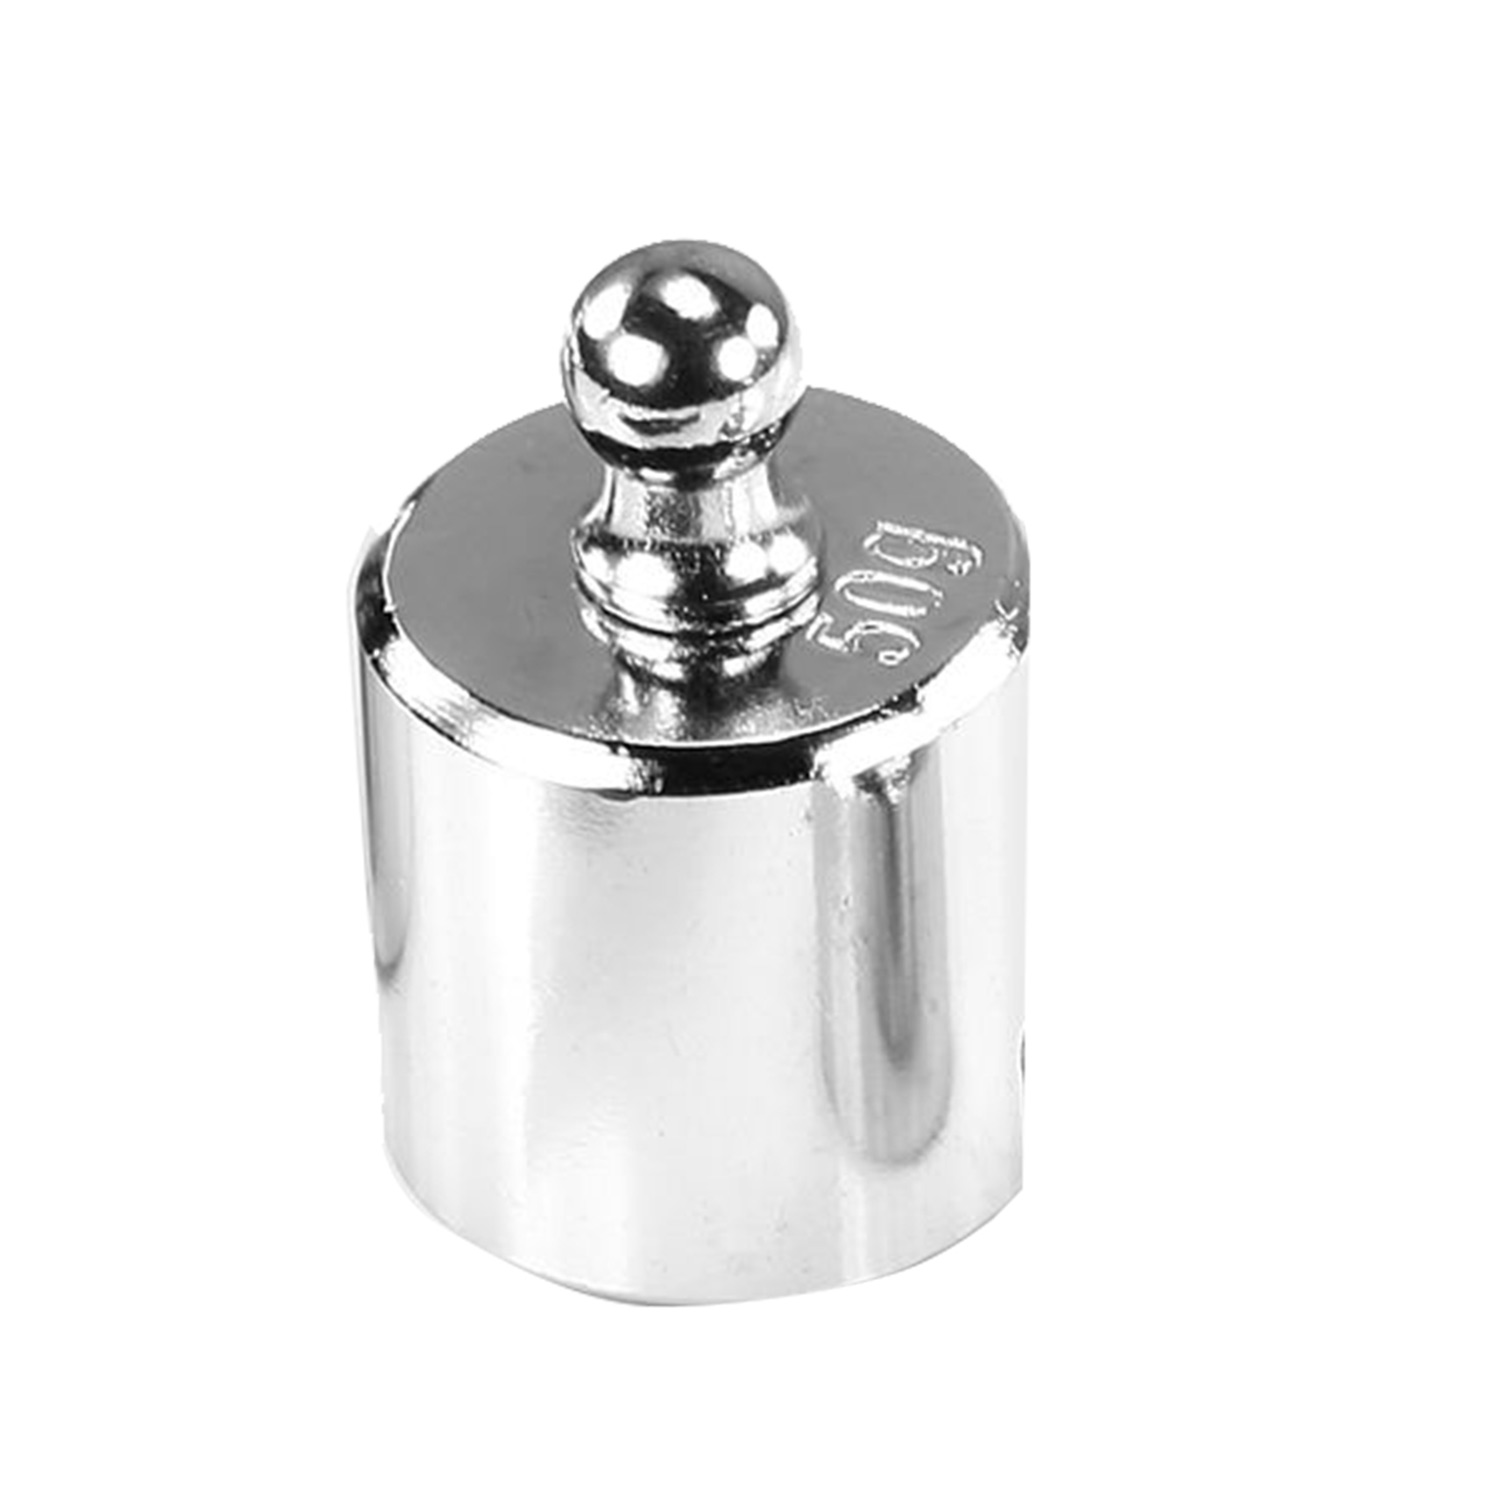 6B9F-Weight-Chrome-Calibration-for-Digital-Jewellery-100g-50g-20g-10g-5g-Silver